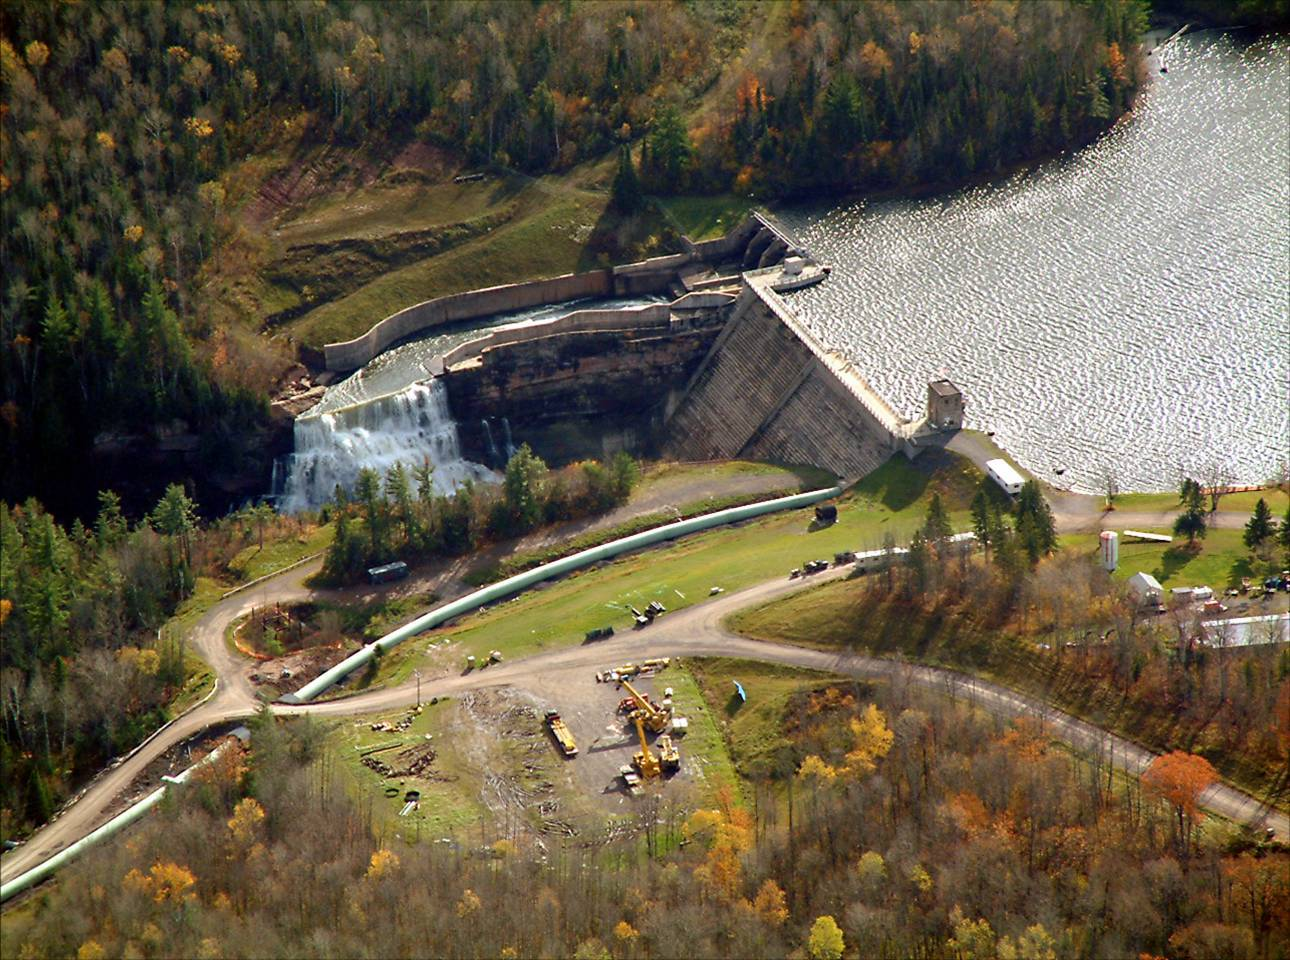 The Victoria Dam on the West Branch of the Ontonagon River provides good sport fishing opportunities.